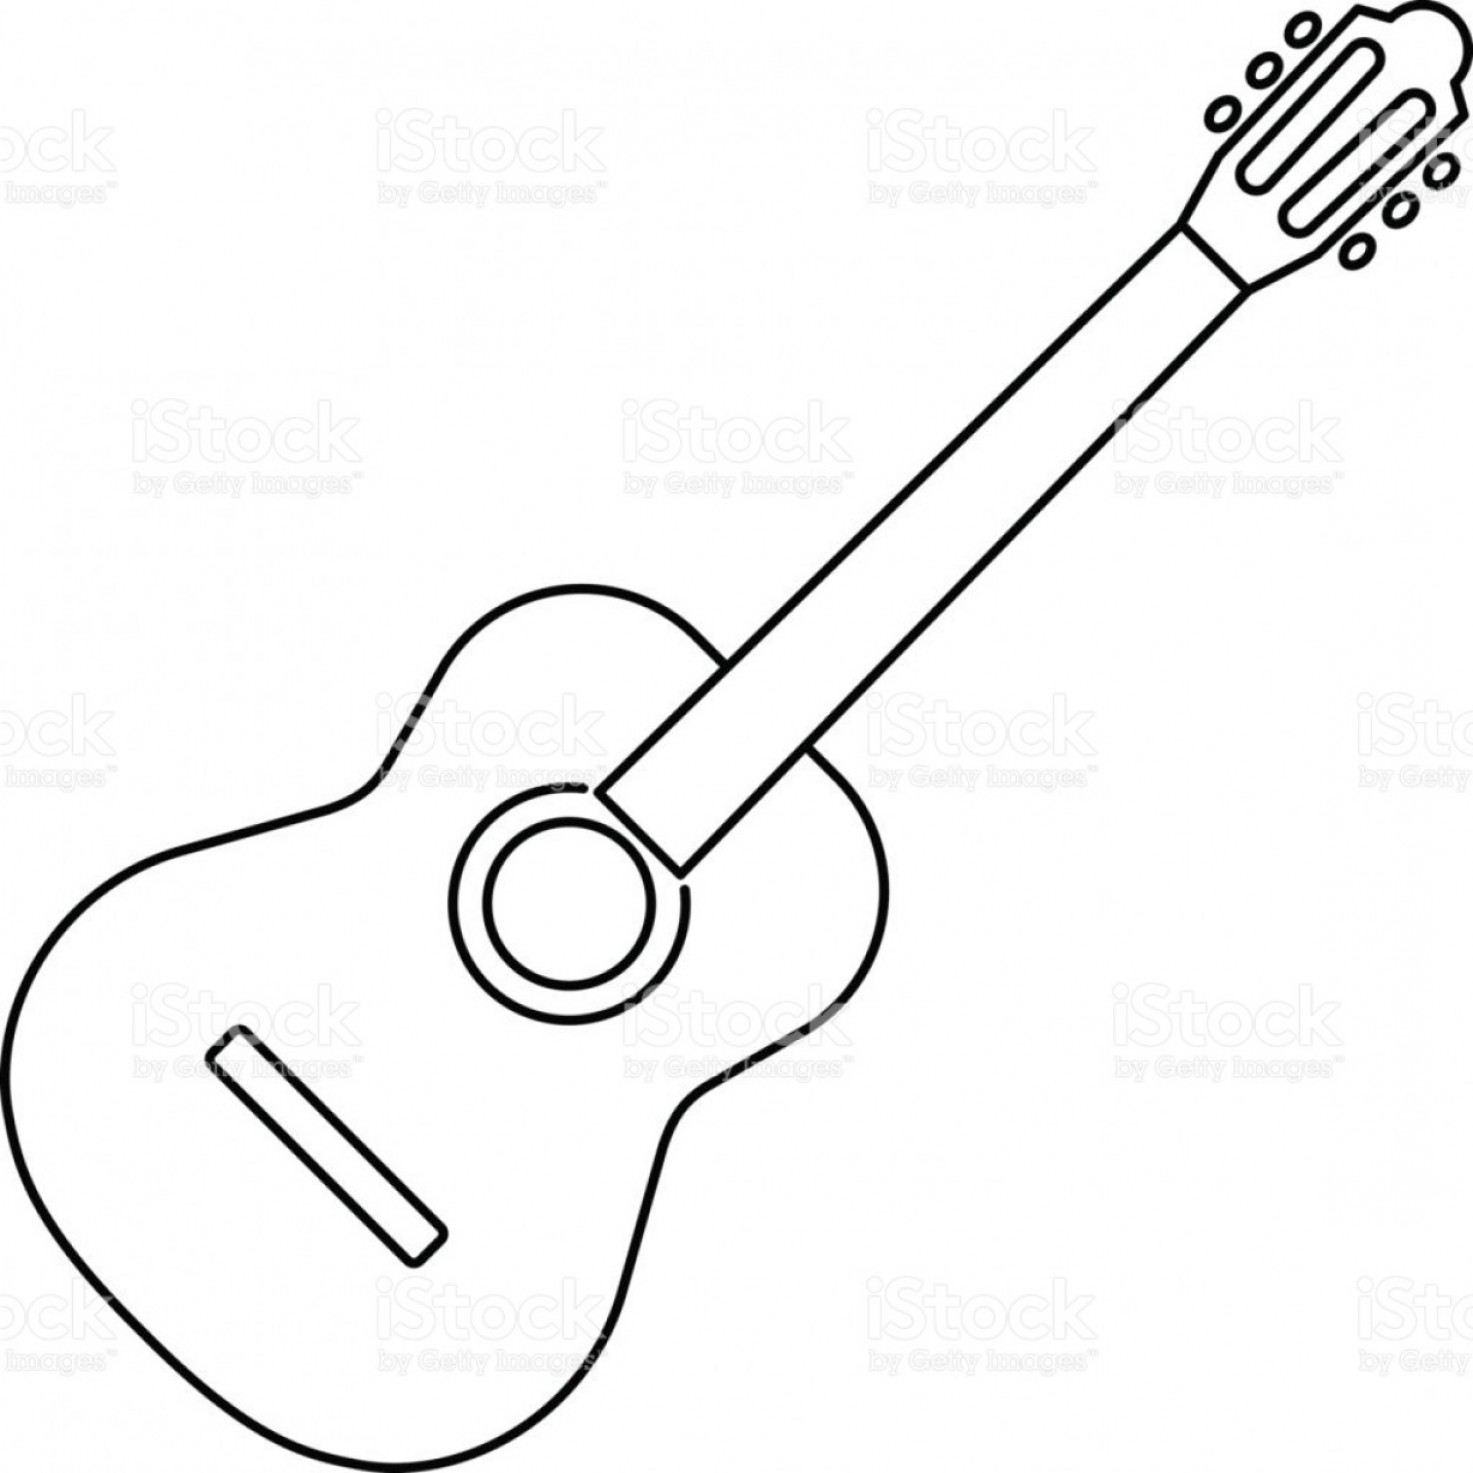 Vector Guitar Clip Art Black And White: Icon Of Acoustic Guitar Icon Black Contour On White Background Of Vector Illustration Gm